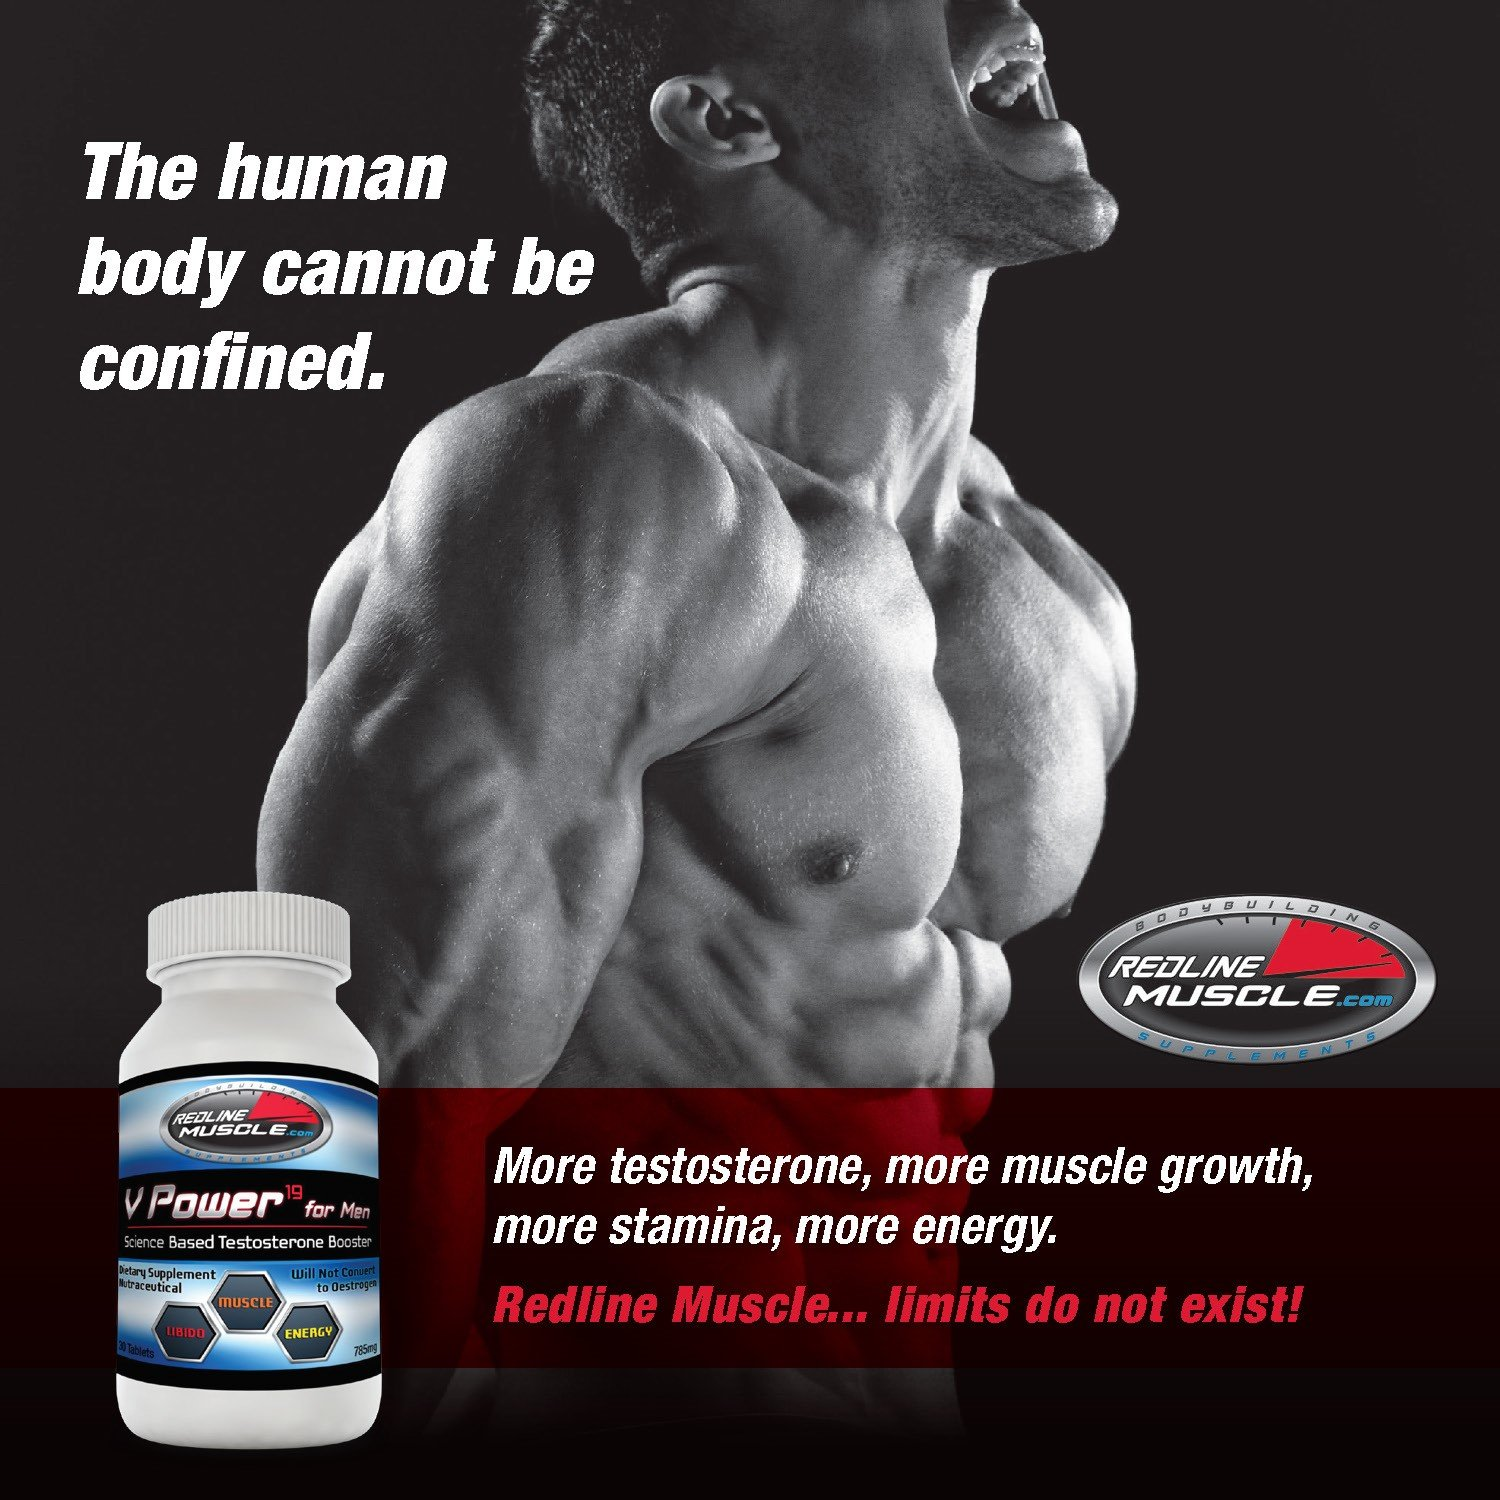 Amazon.com: #1 Testosterone Booster Supplement for Men 3X ...